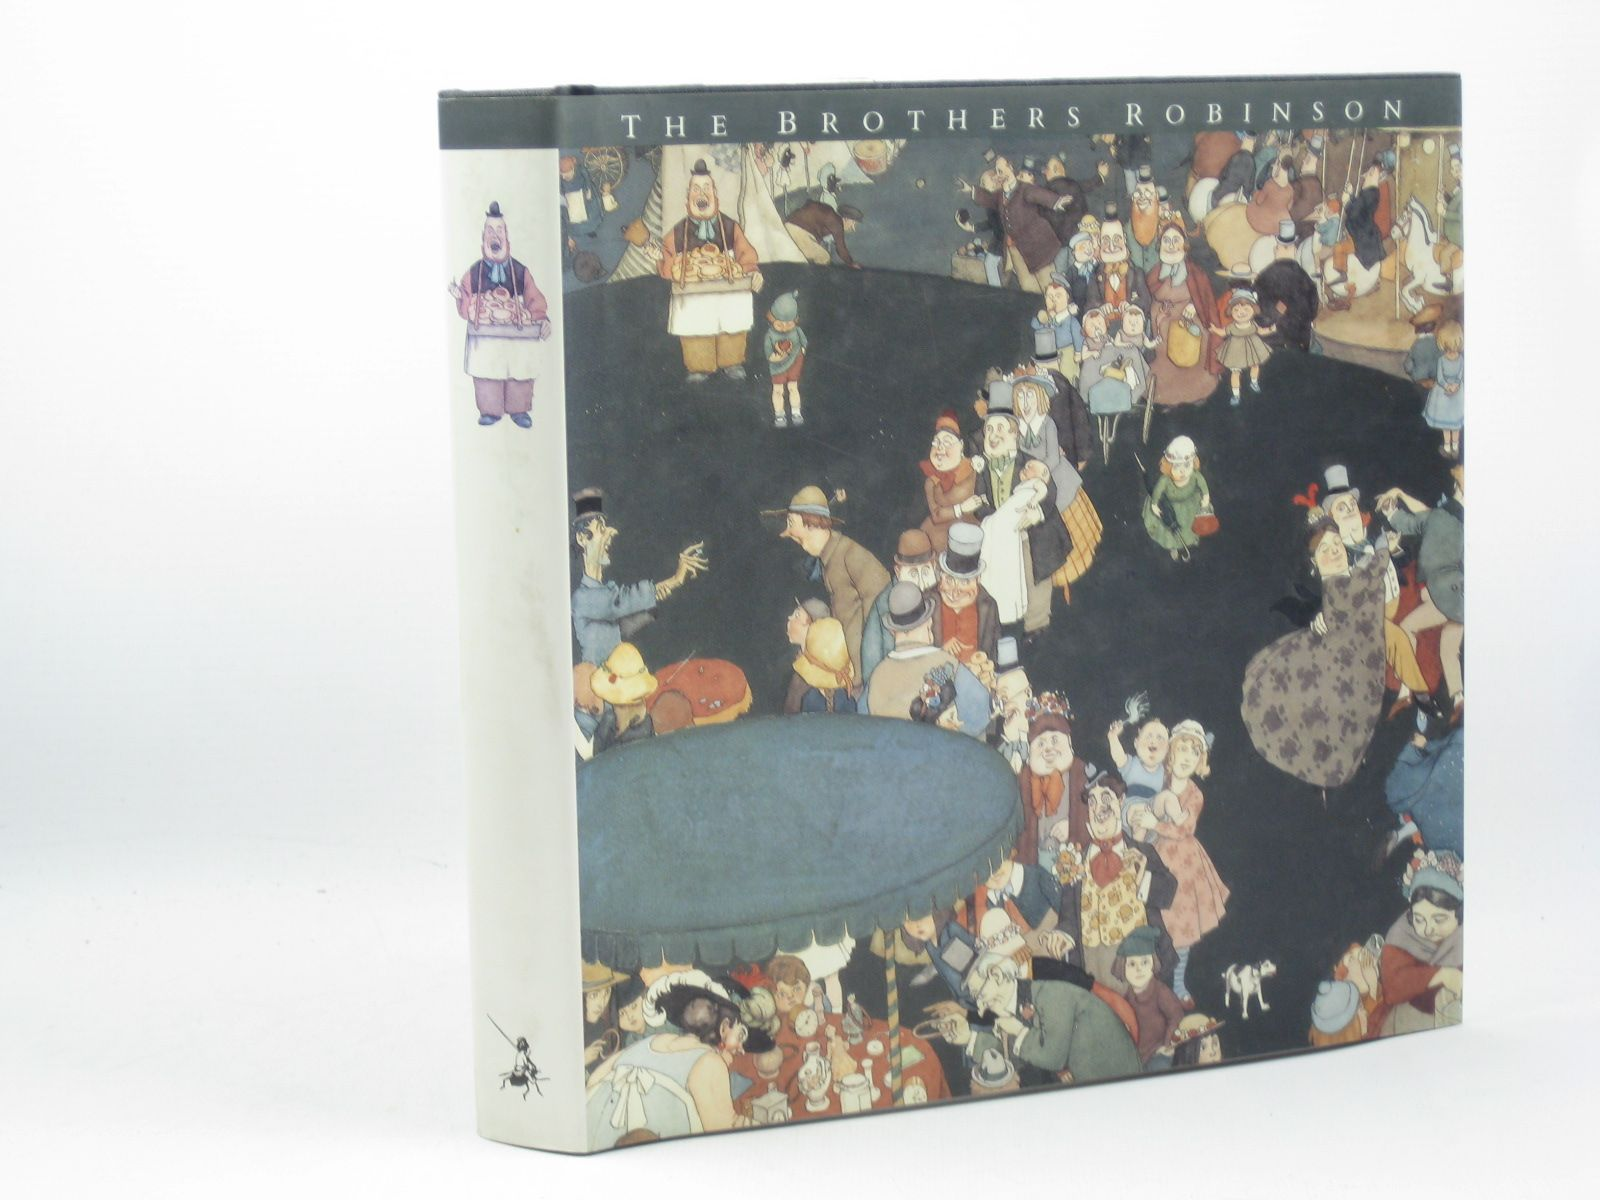 Photo of THE BROTHERS ROBINSON written by Cornelissen, Julia Beare, Geoffrey illustrated by Robinson, W. Heath Robinson, Charles Robinson, T.H. published by Chris Beetles Ltd. (STOCK CODE: 1312513)  for sale by Stella & Rose's Books